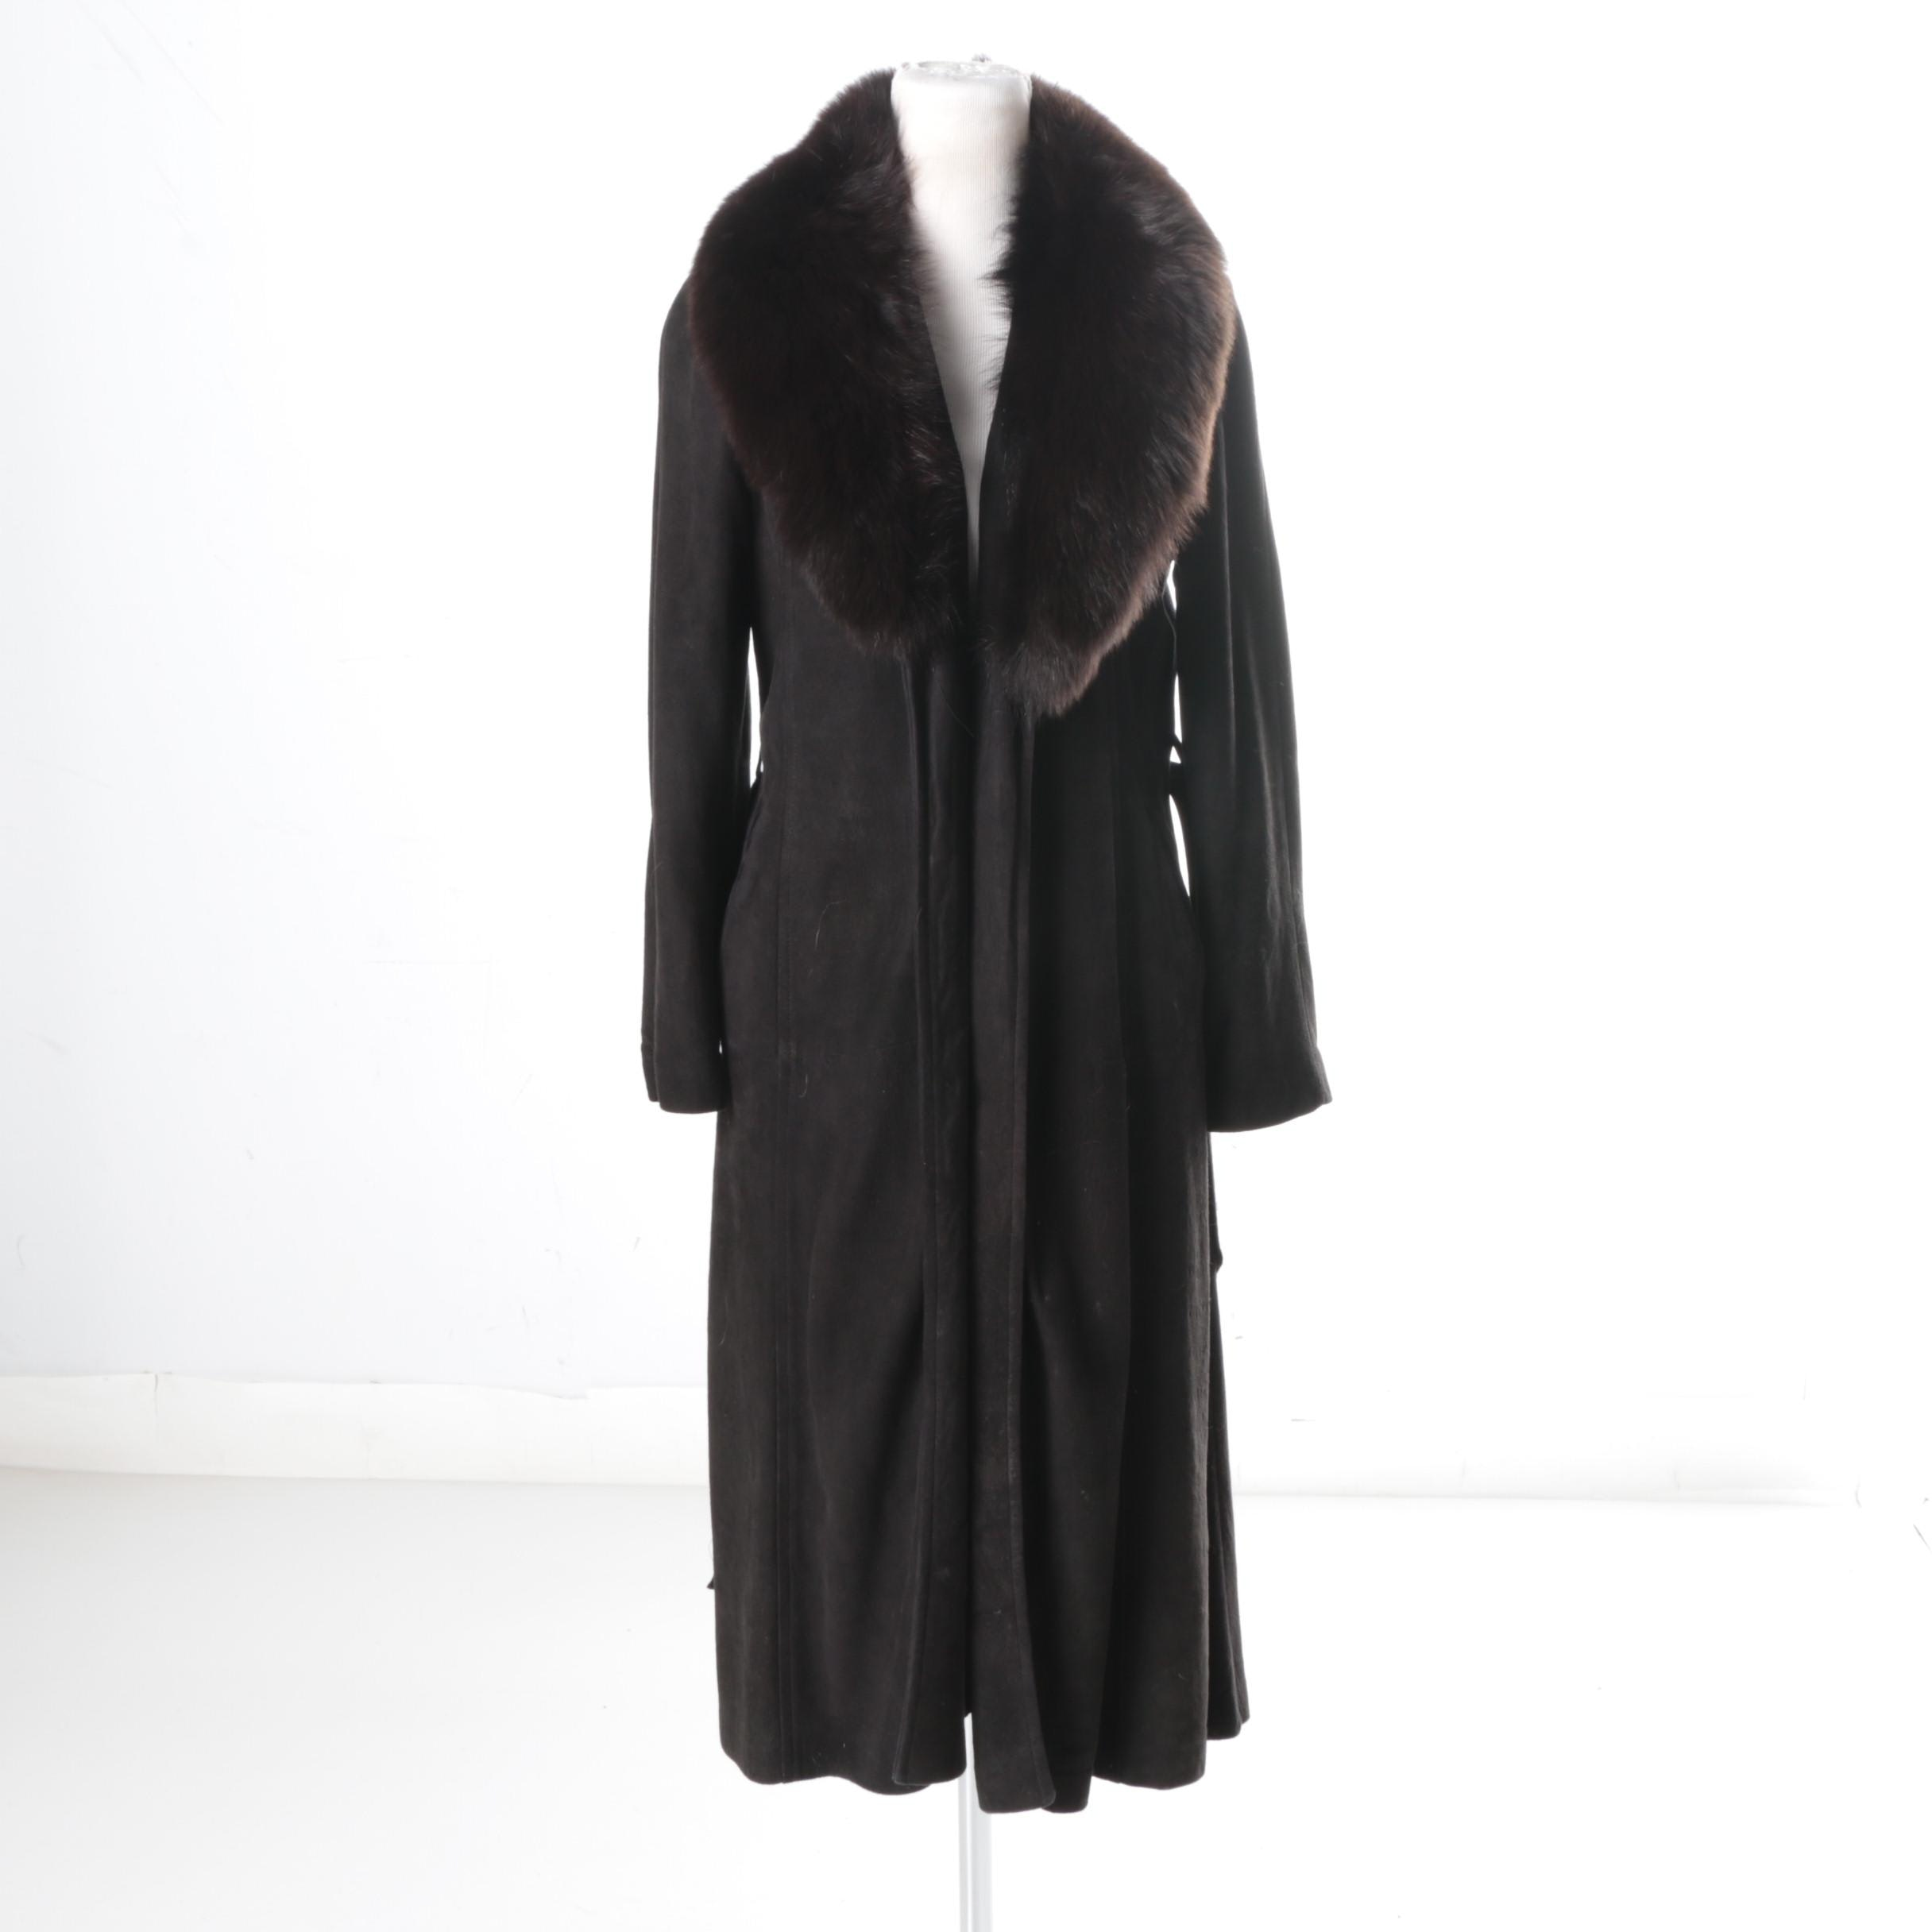 Vintage Black Suede Coat with Fox Fur Collar